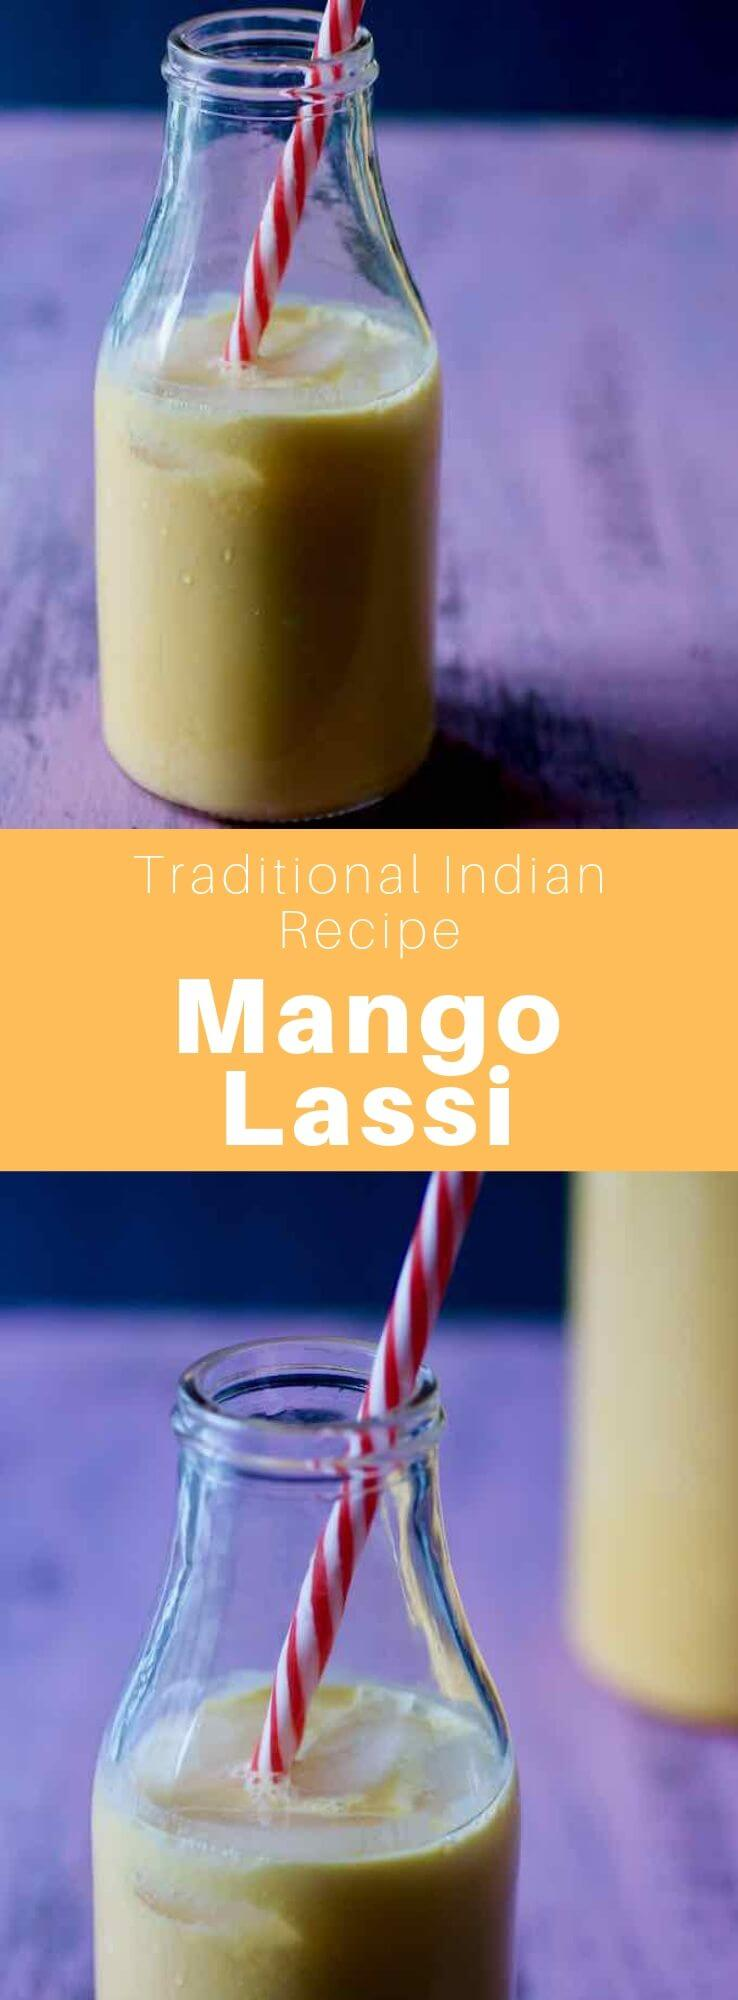 Mango lassi is a deliciously sweet drink, very popular in India, that is prepared with dahi (yogurt), milk and mango pulp. #India #IndianCuisine #IndianRecipe #WorldCuisine #196flavors